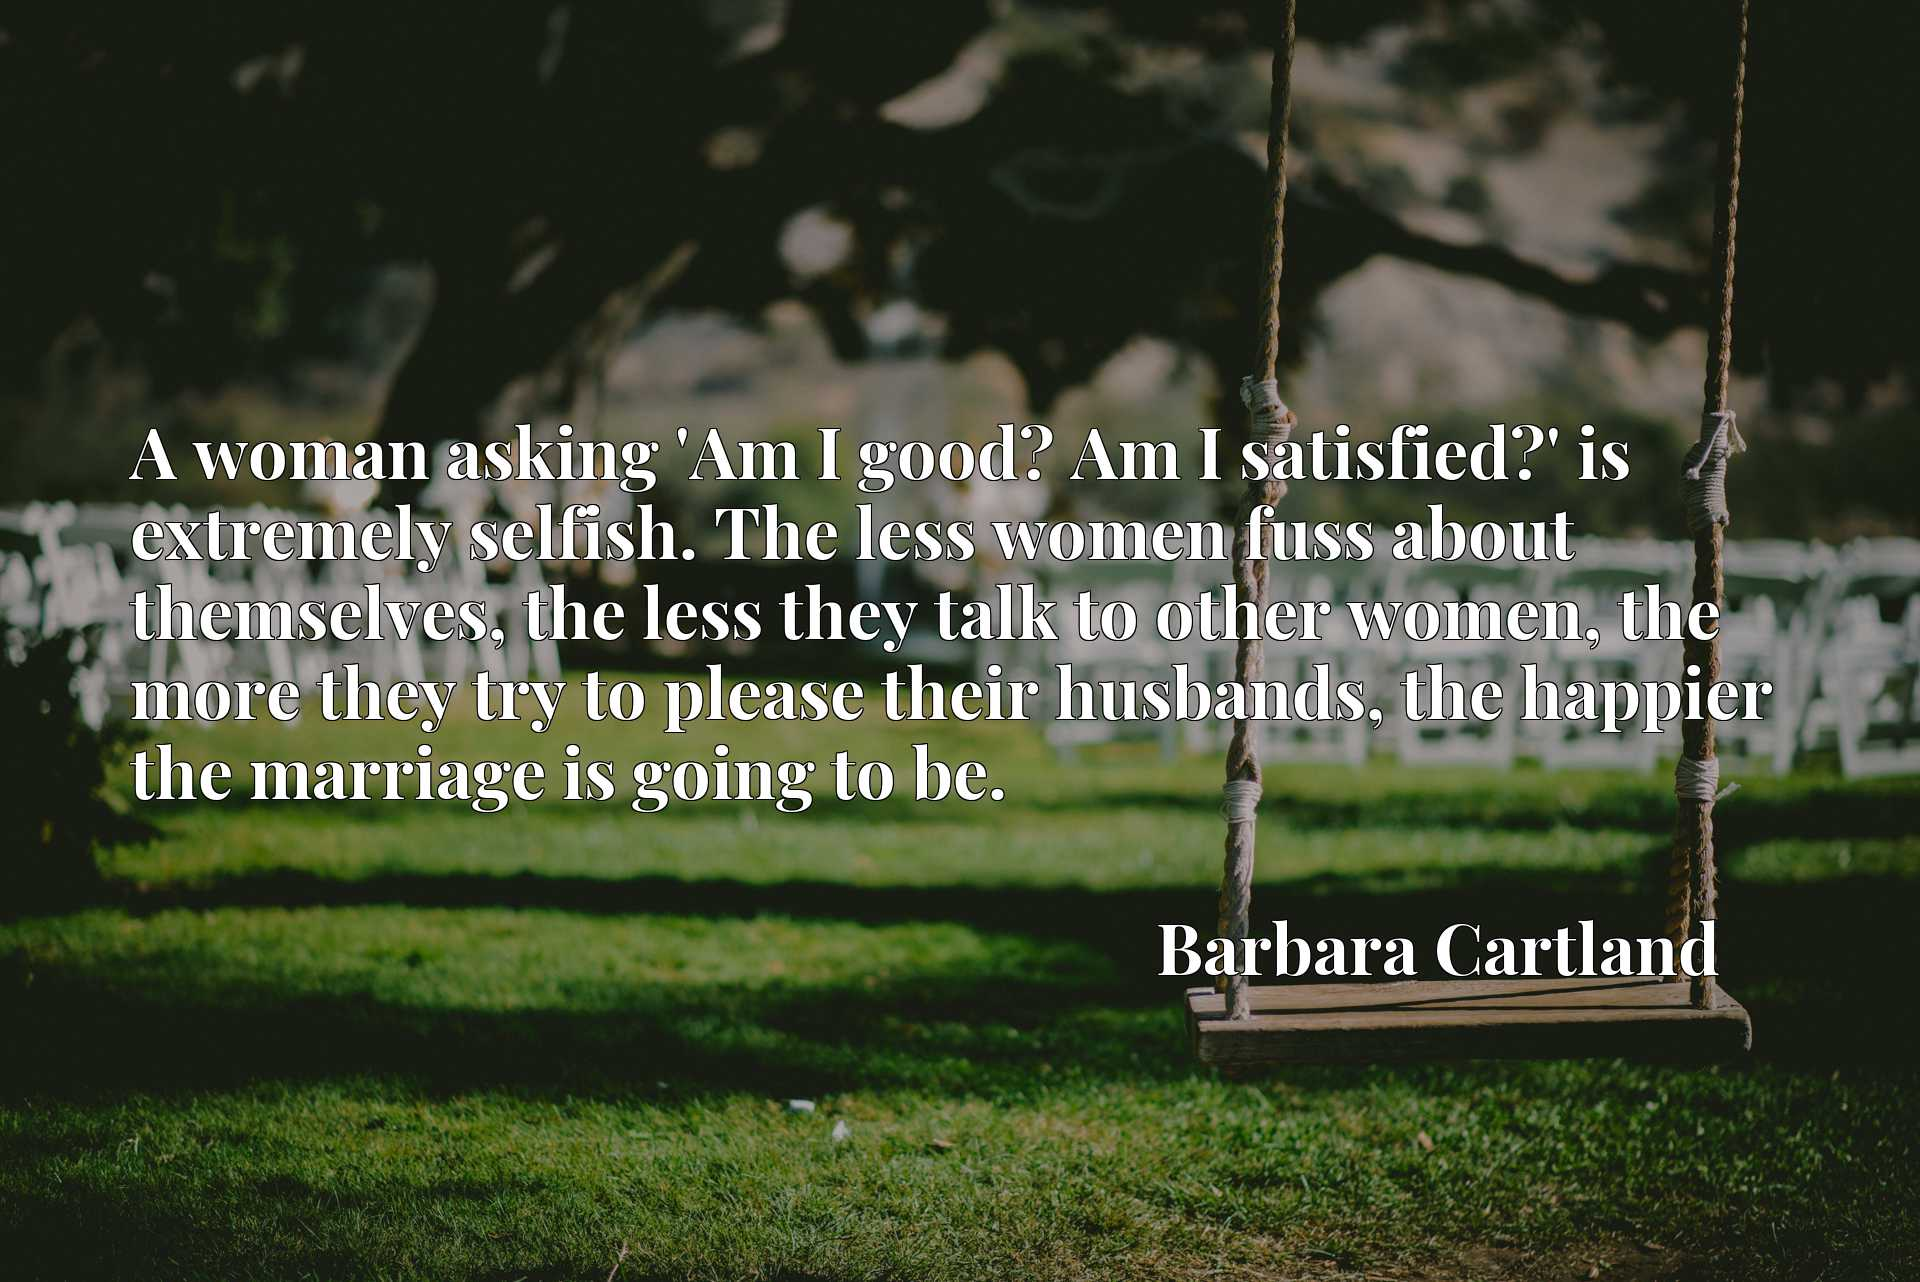 Quote Picture :A woman asking 'Am I good? Am I satisfied?' is extremely selfish. The less women fuss about themselves, the less they talk to other women, the more they try to please their husbands, the happier the marriage is going to be.